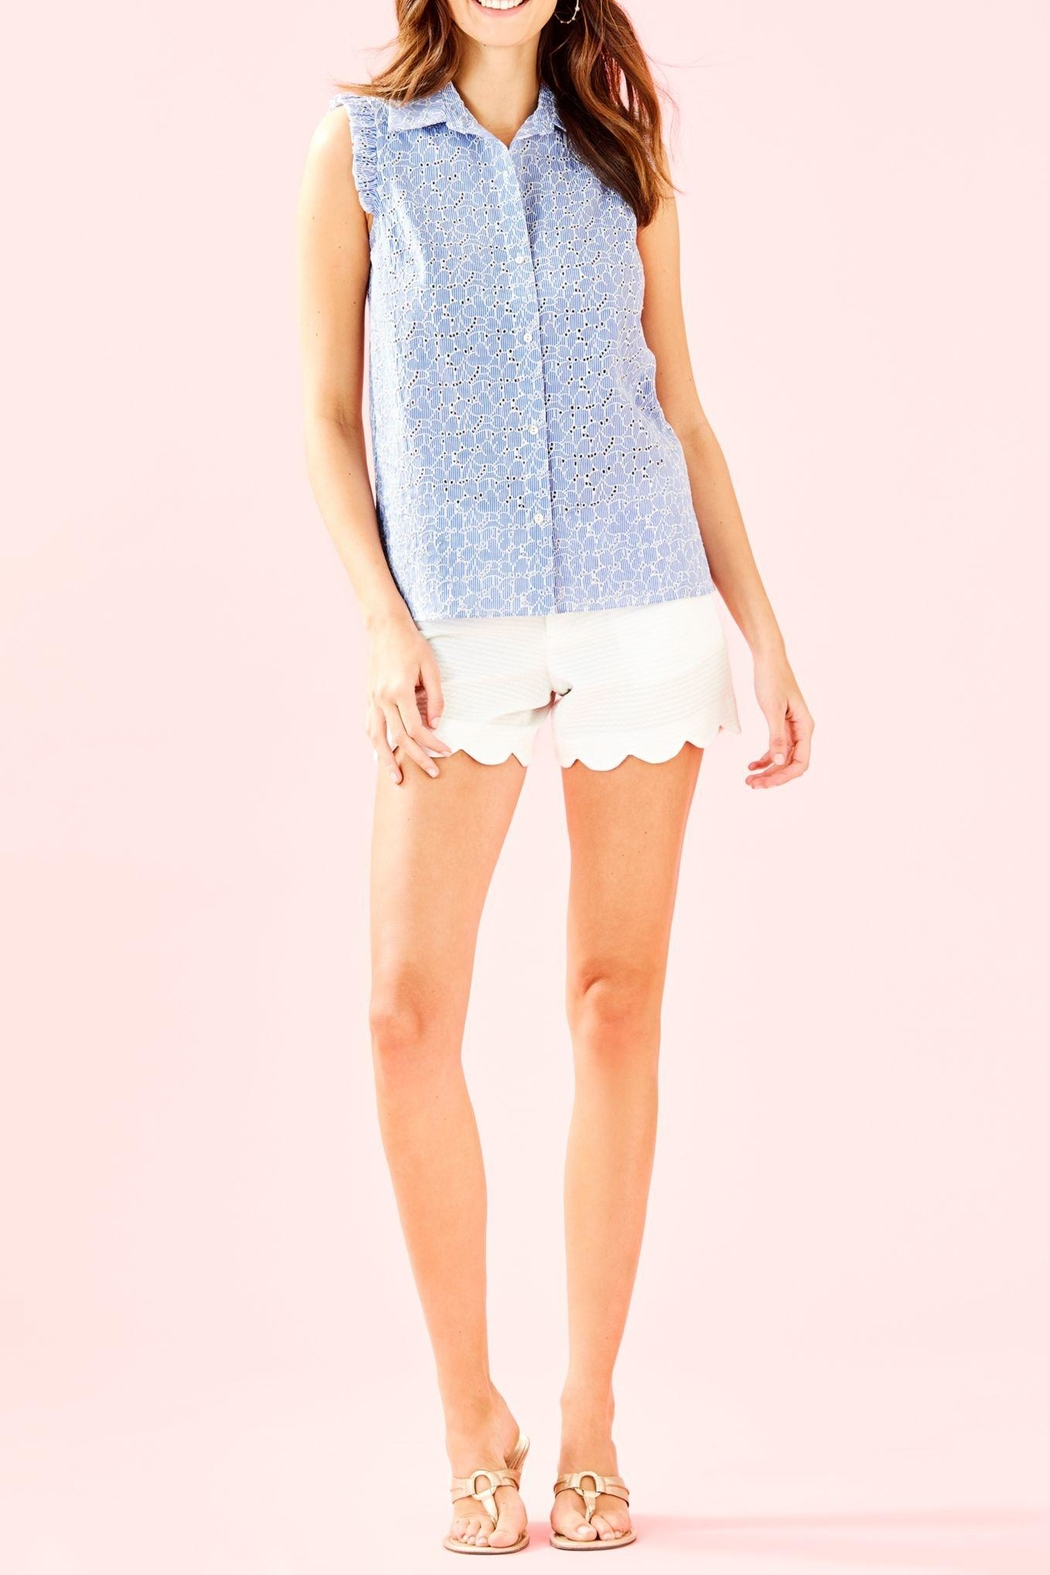 Lilly Pulitzer Lenox Button-Front Top - Side Cropped Image